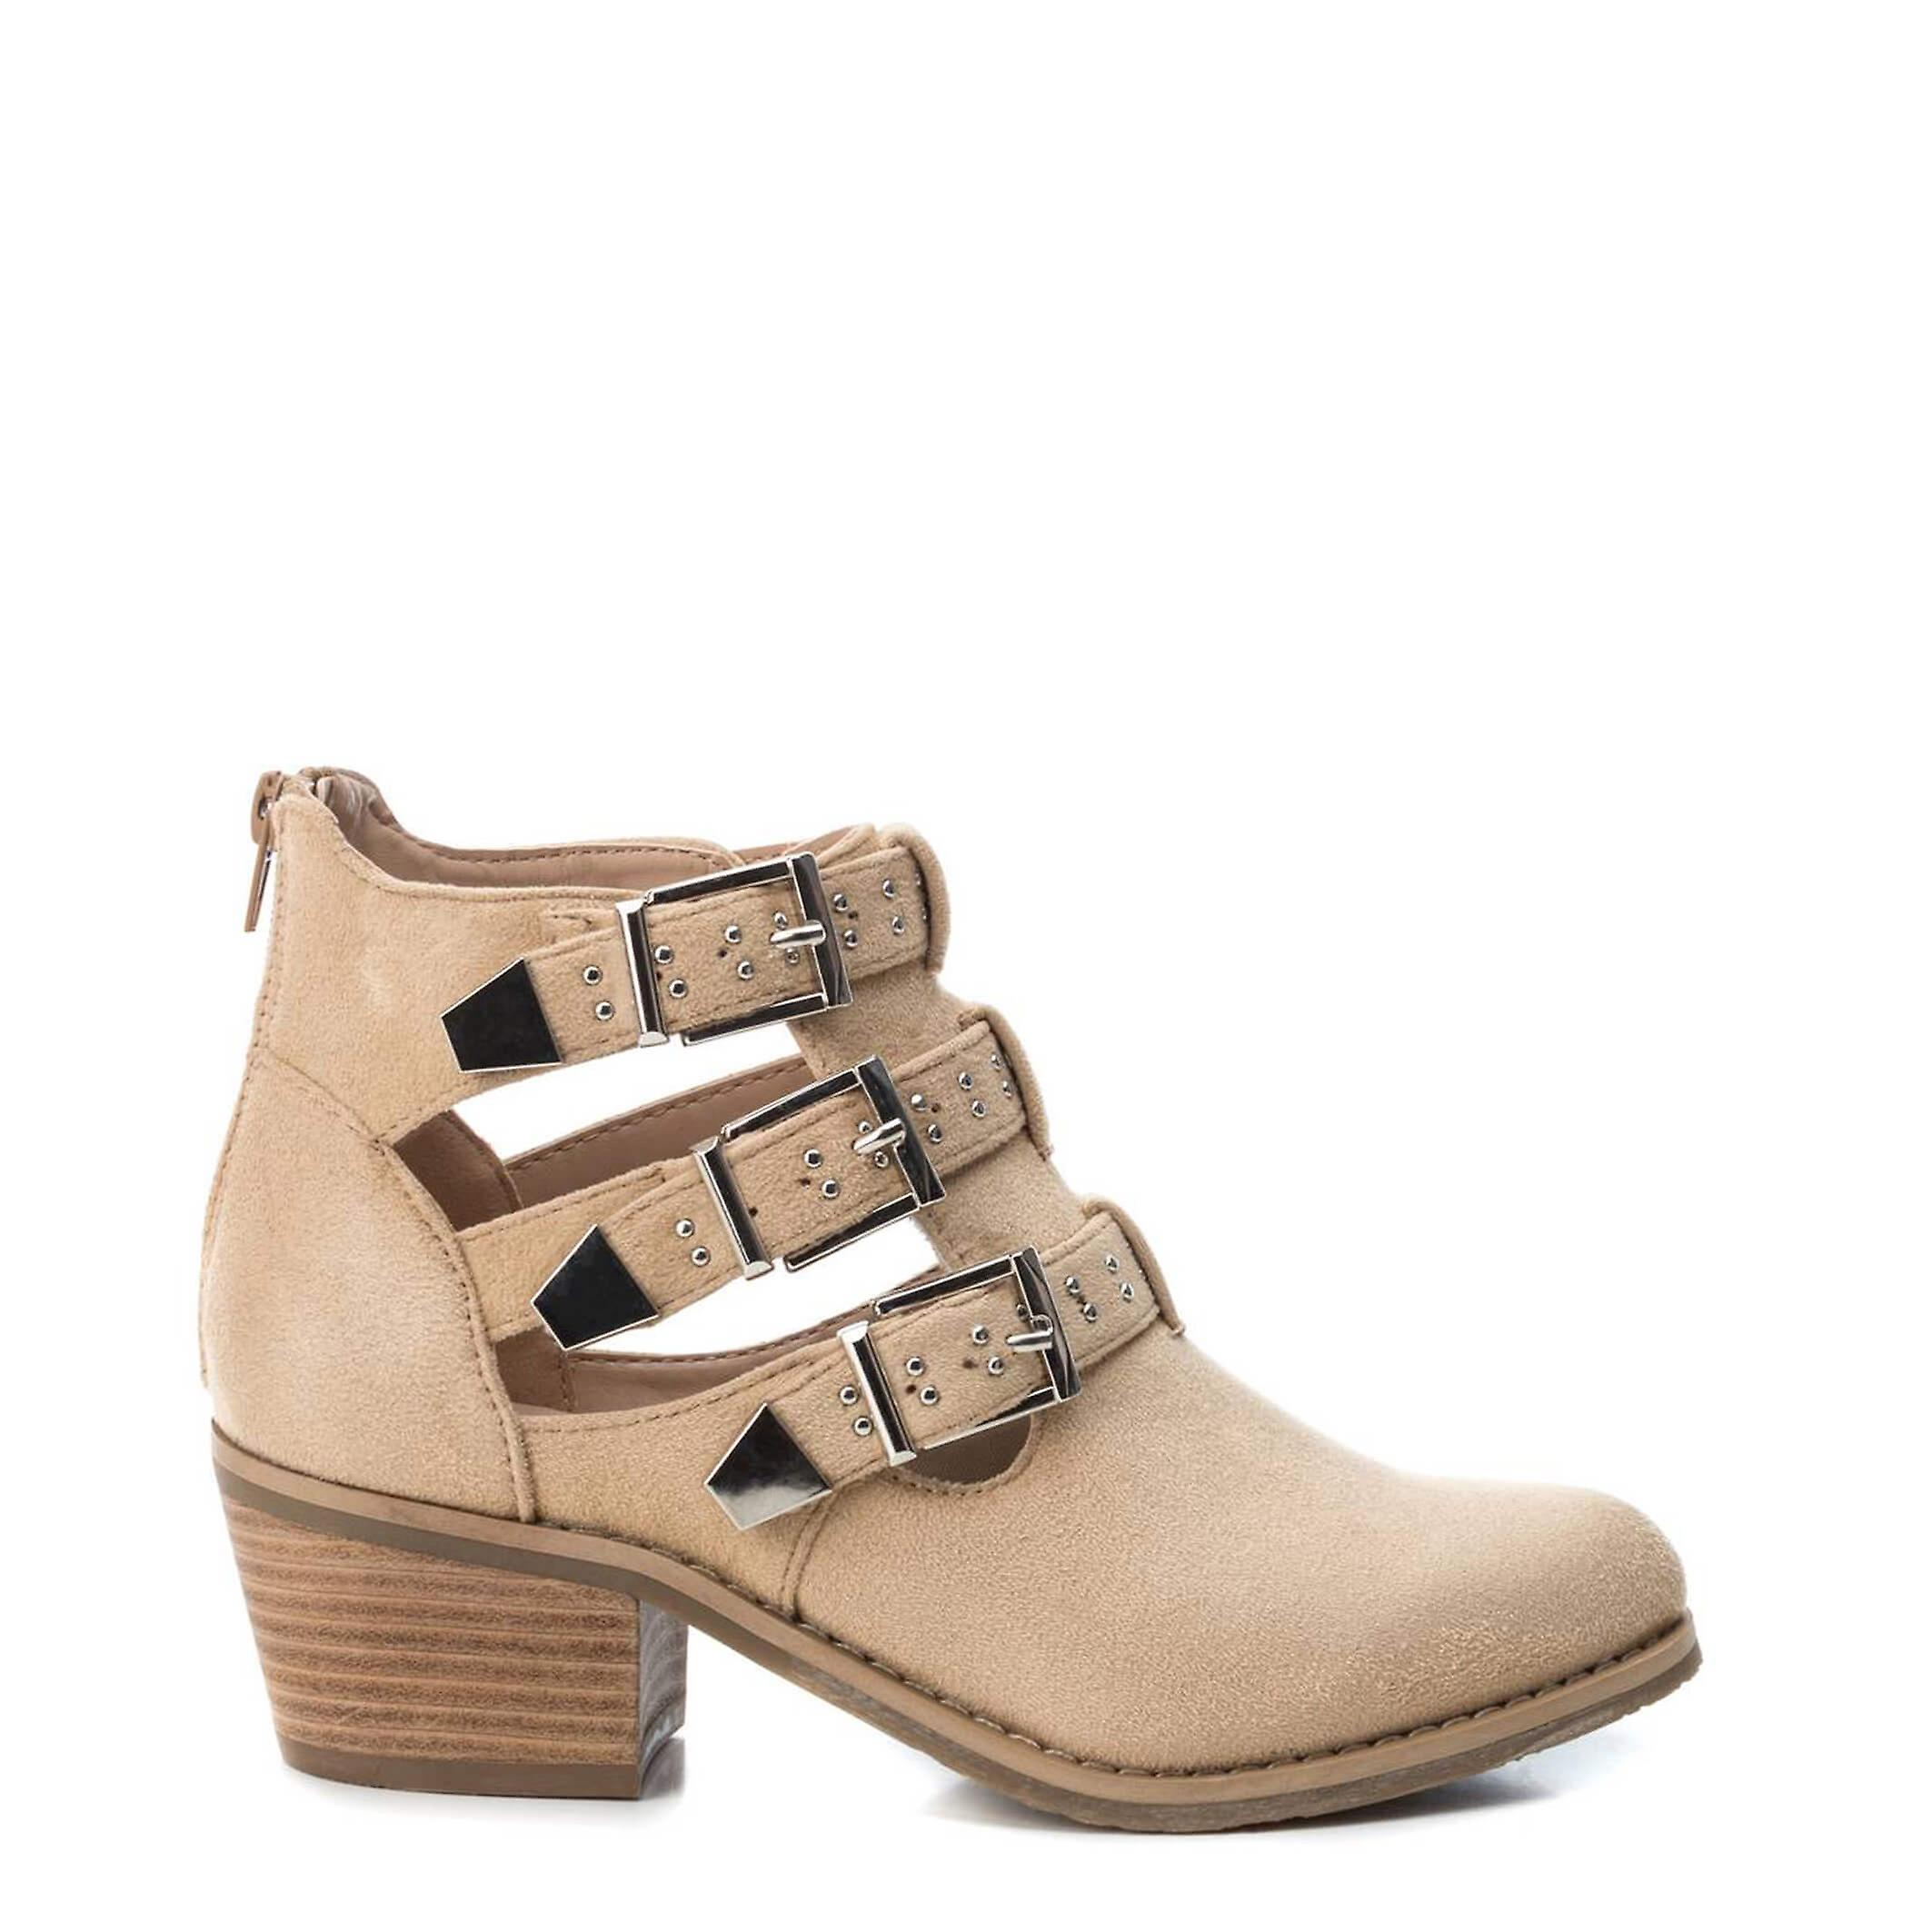 Xti Original Women Spring/Summer Ankle Boot - Brown Color 40192 JXAxU